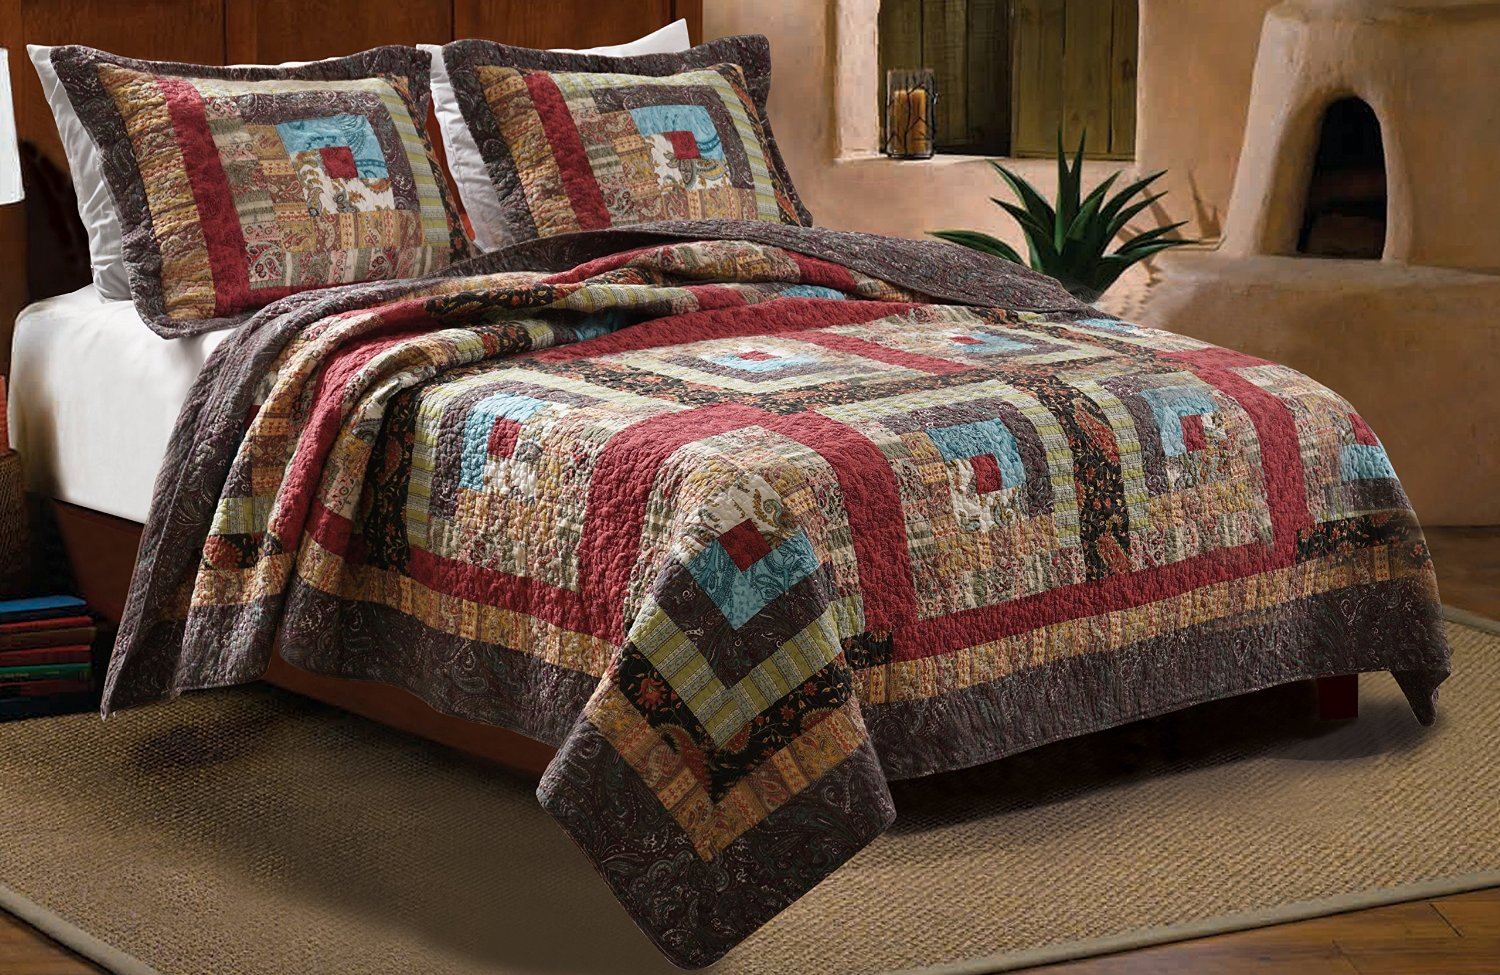 Global Quilts for Bedroom Market 2020 with (Covid-19) Impact Analysis:  ANICHINI, Luolai, Sferra, WestPoint, Duoxiai, Pacific Coast, DEA – Owned